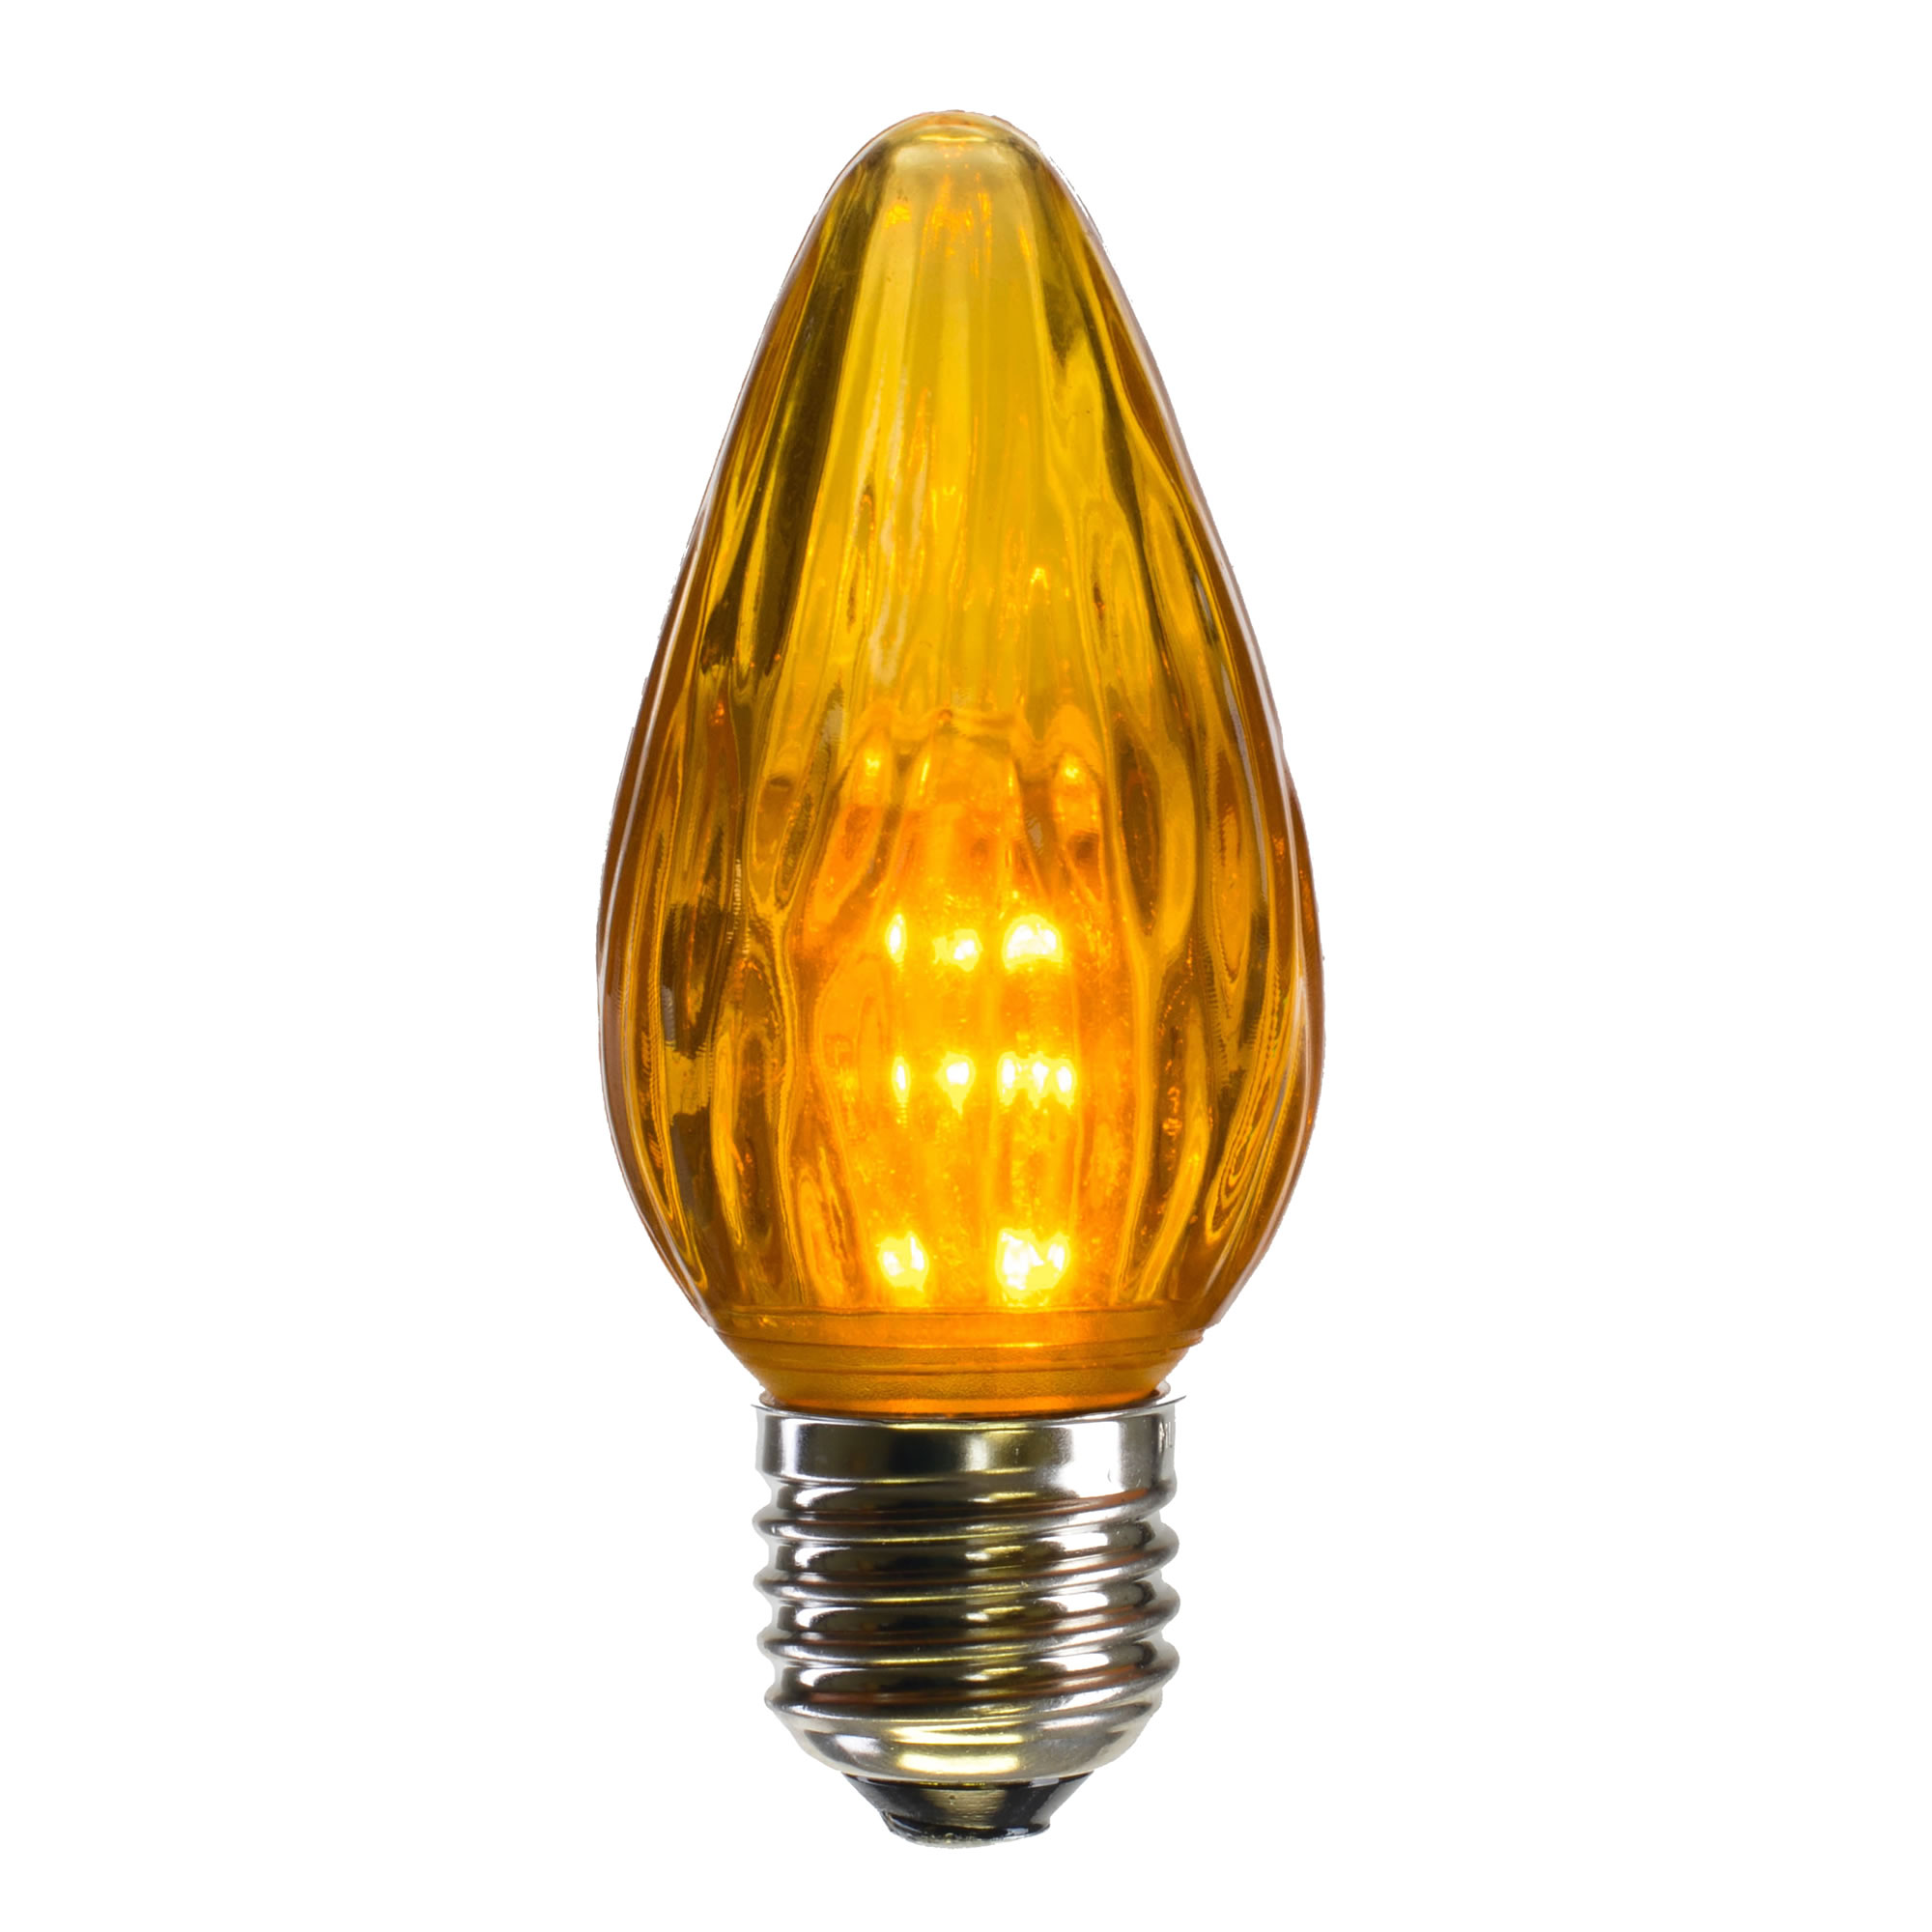 Vickerman F15 Gold Plastic LED Flame Replacement Bulb .96W